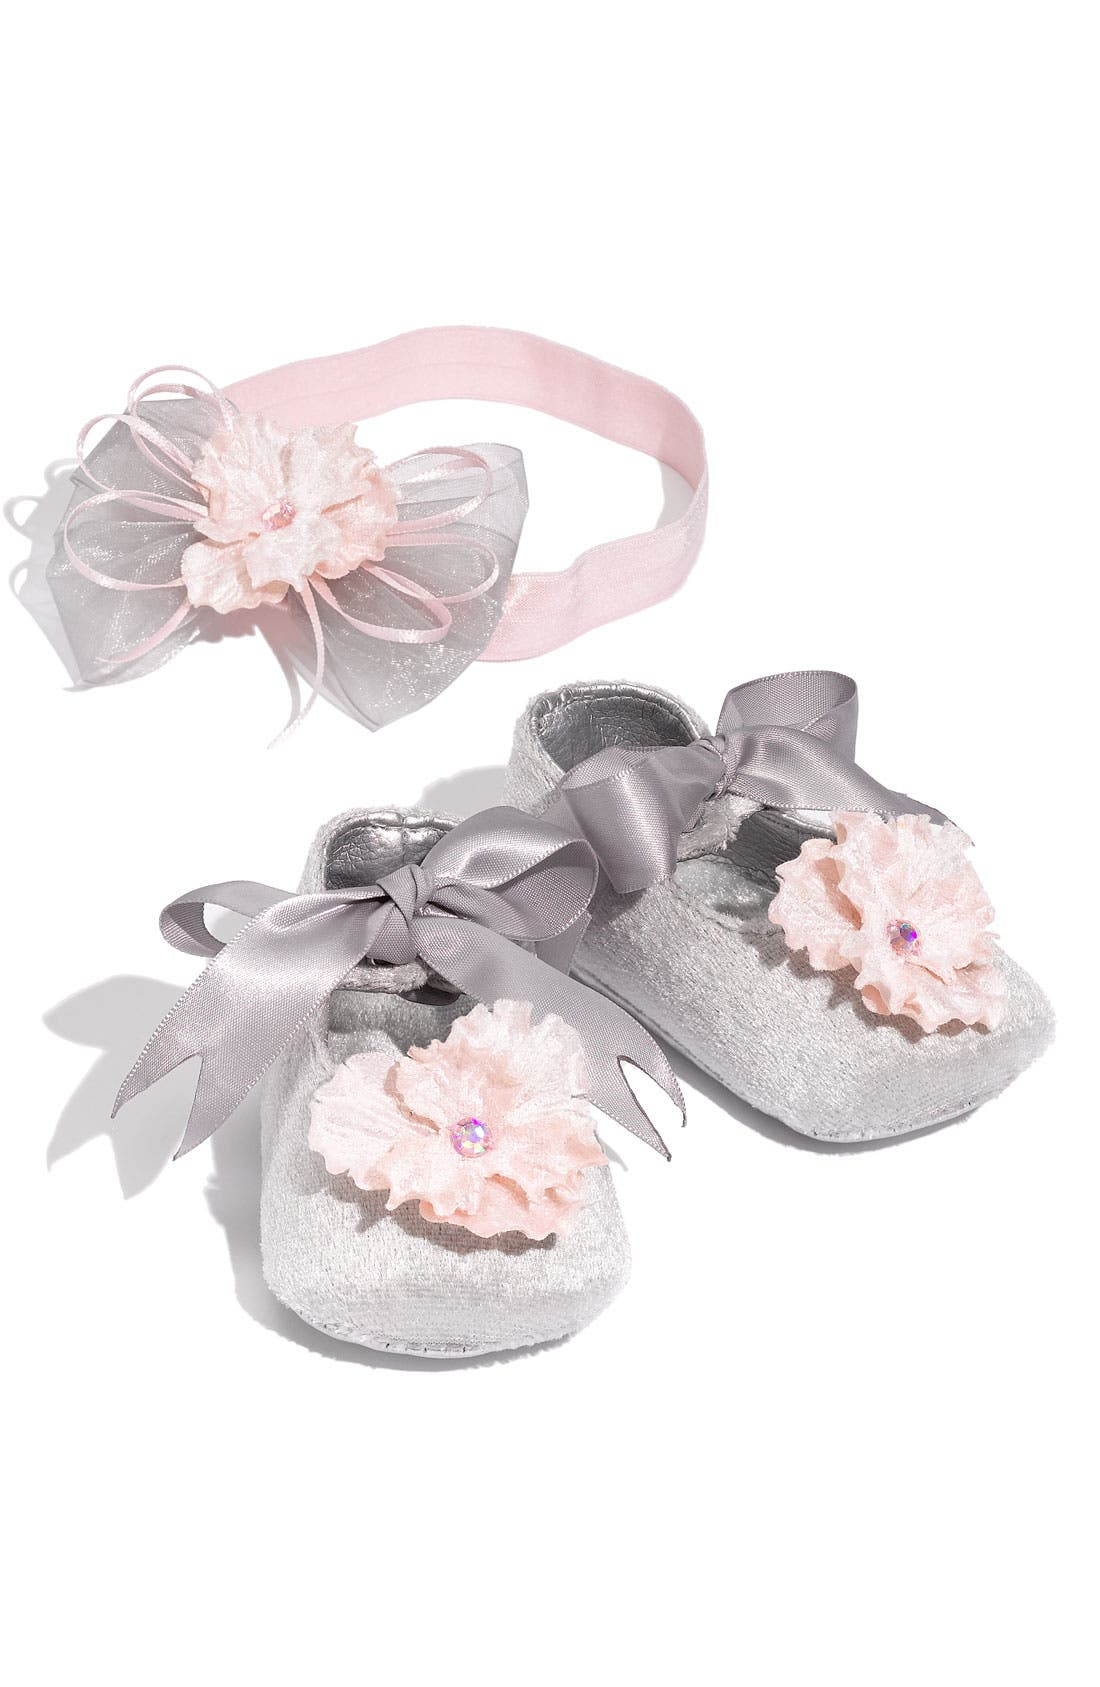 Alternate Image 1 Selected - PLH Bows & Laces Headband & Shoes Set (Infant)